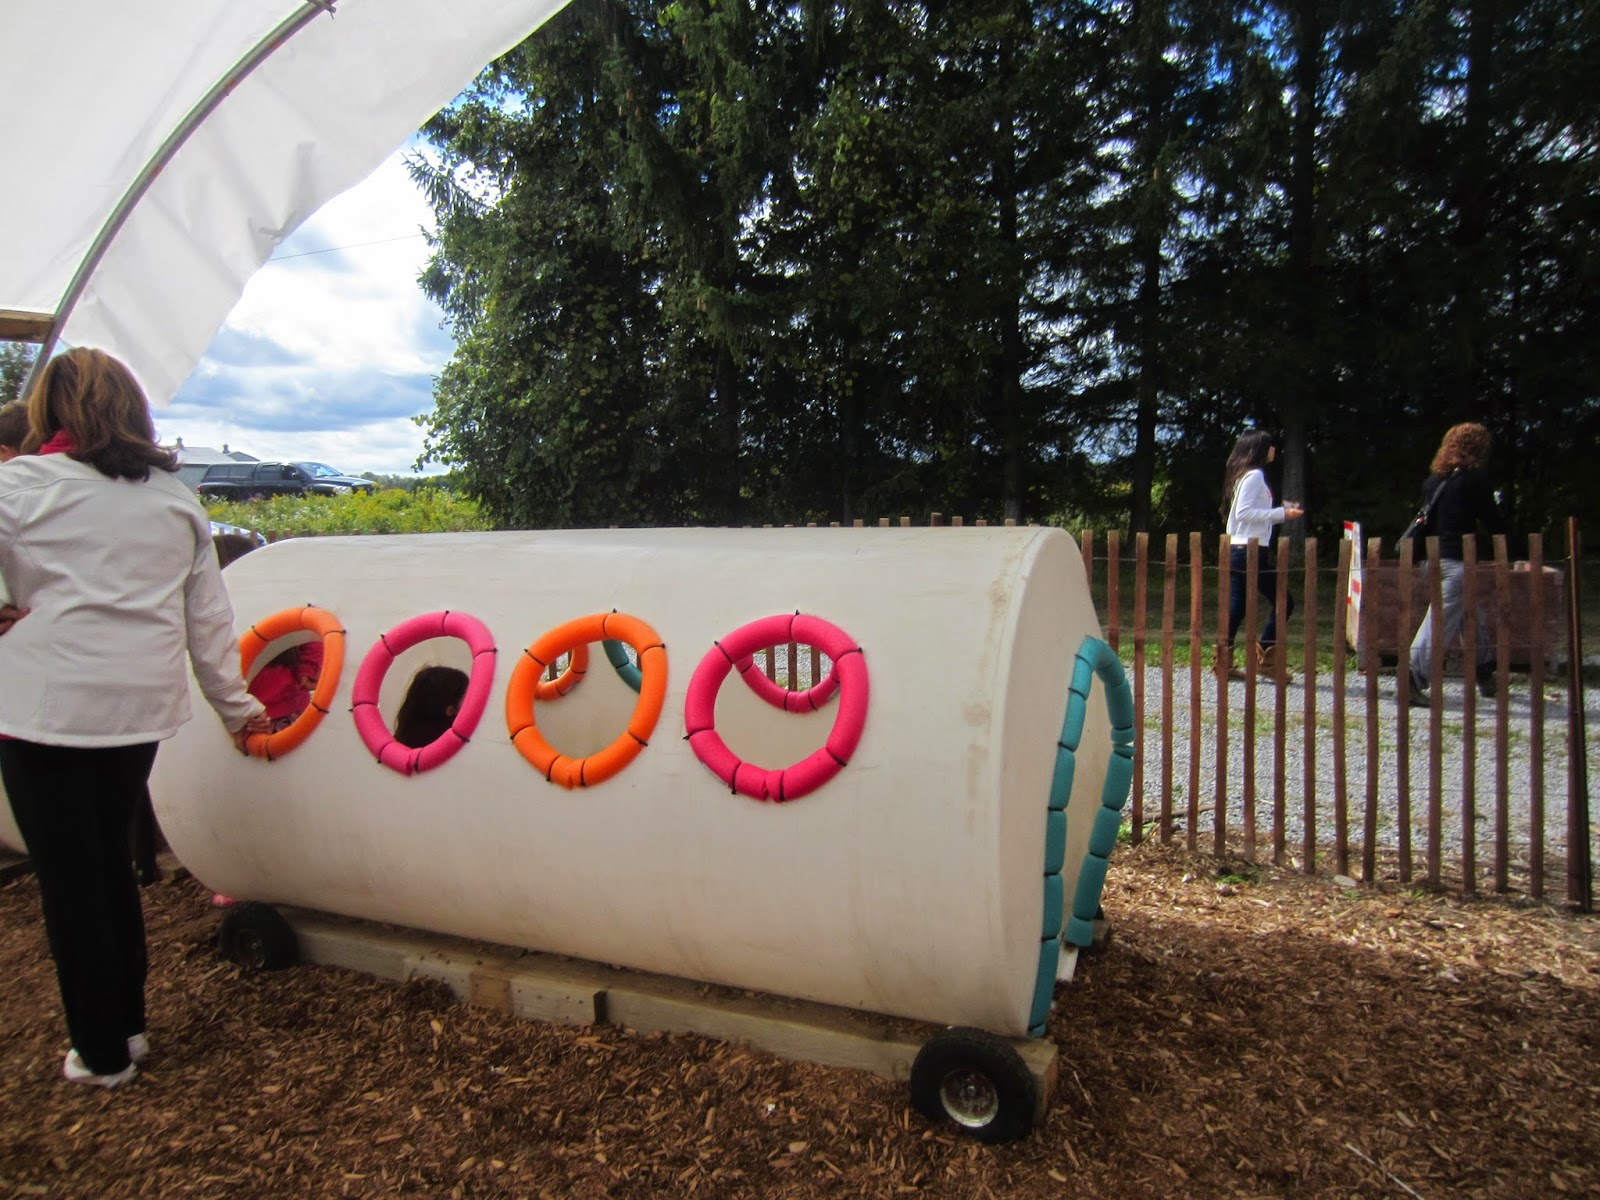 Archibalds Orchards and Estate Winery, re-purposed farm equipment into a playground